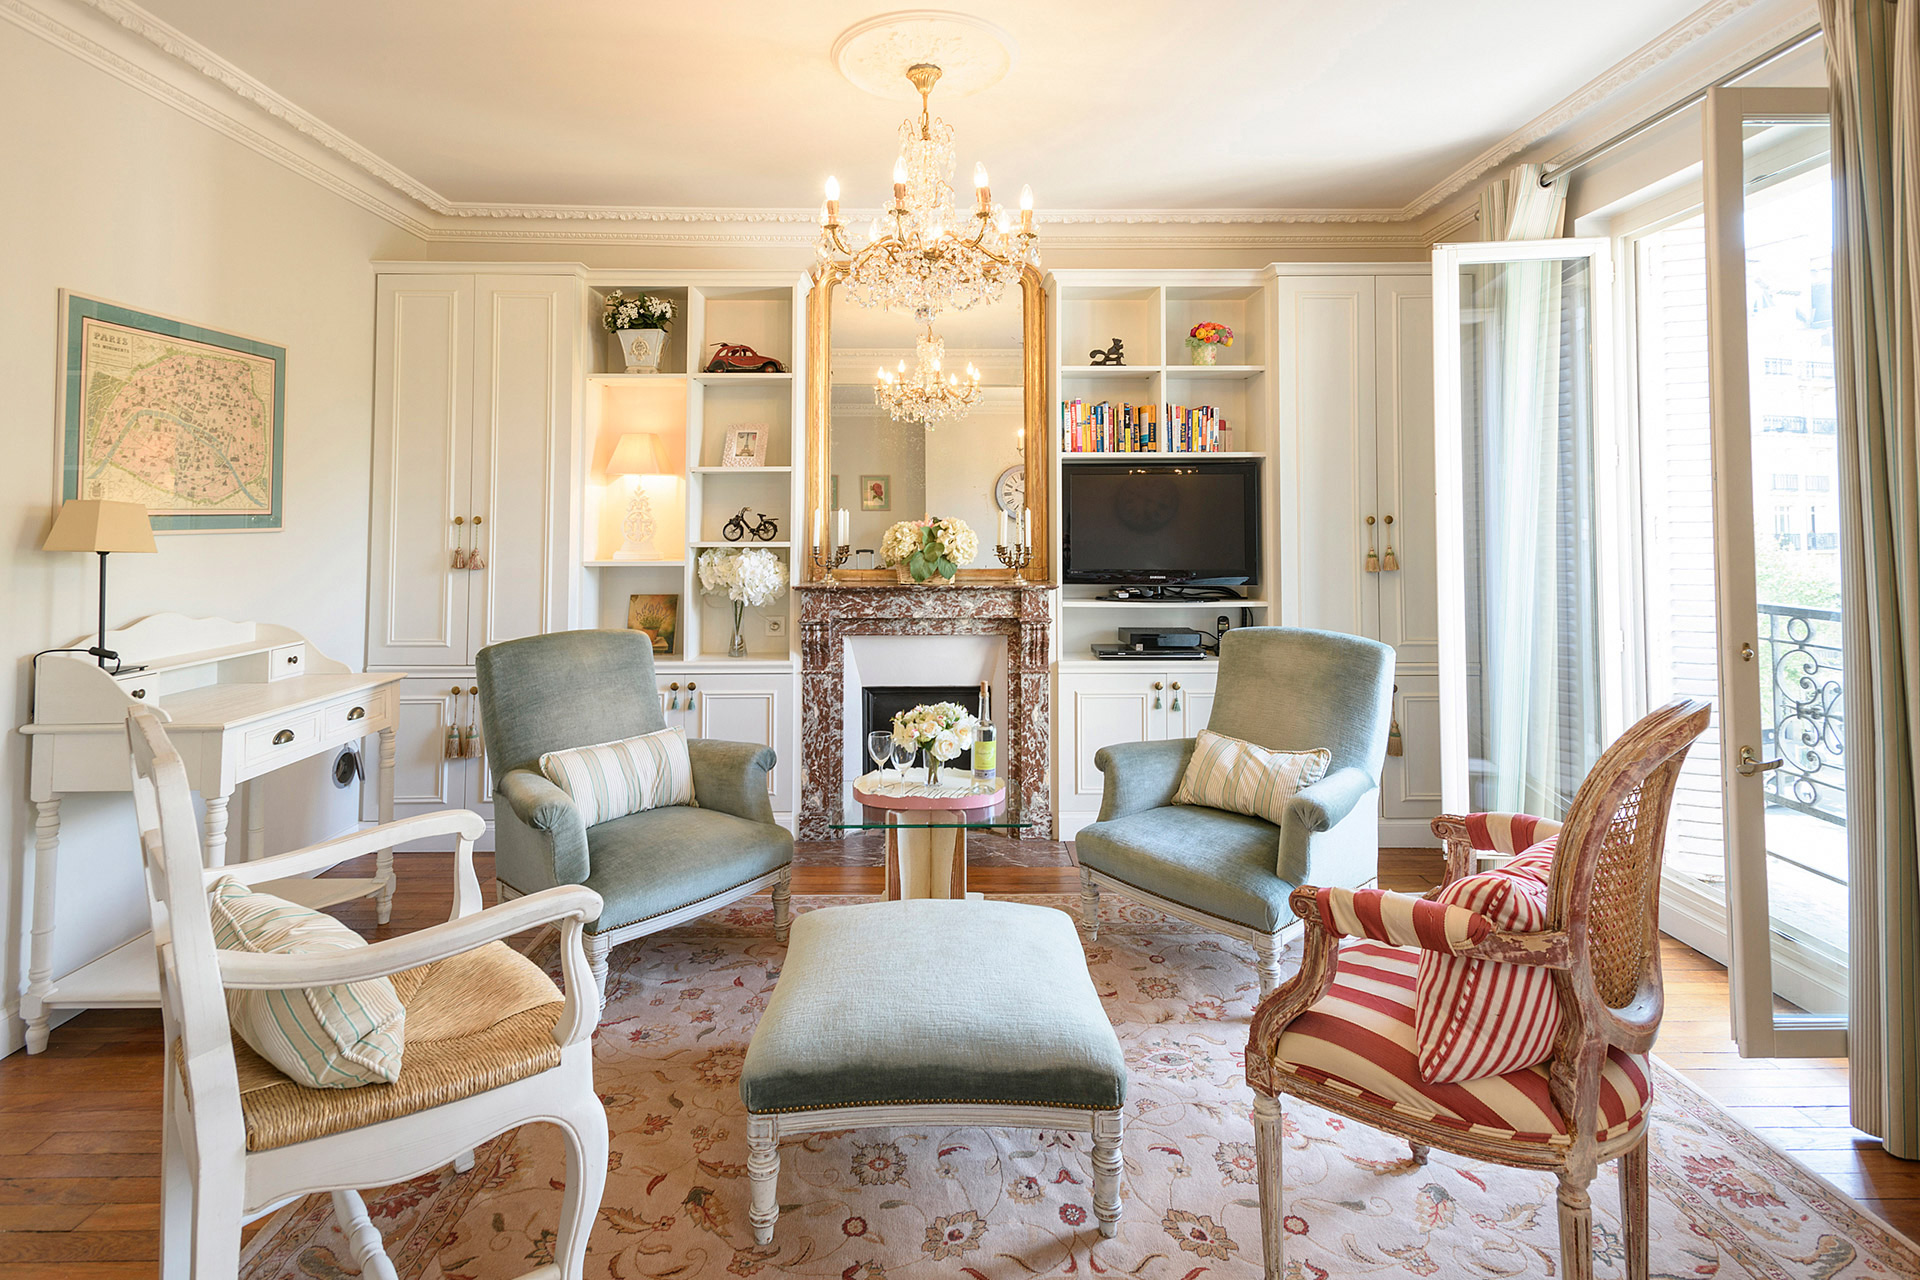 French provencal style living room of the Clairette vacation rental offered by Paris Perfect